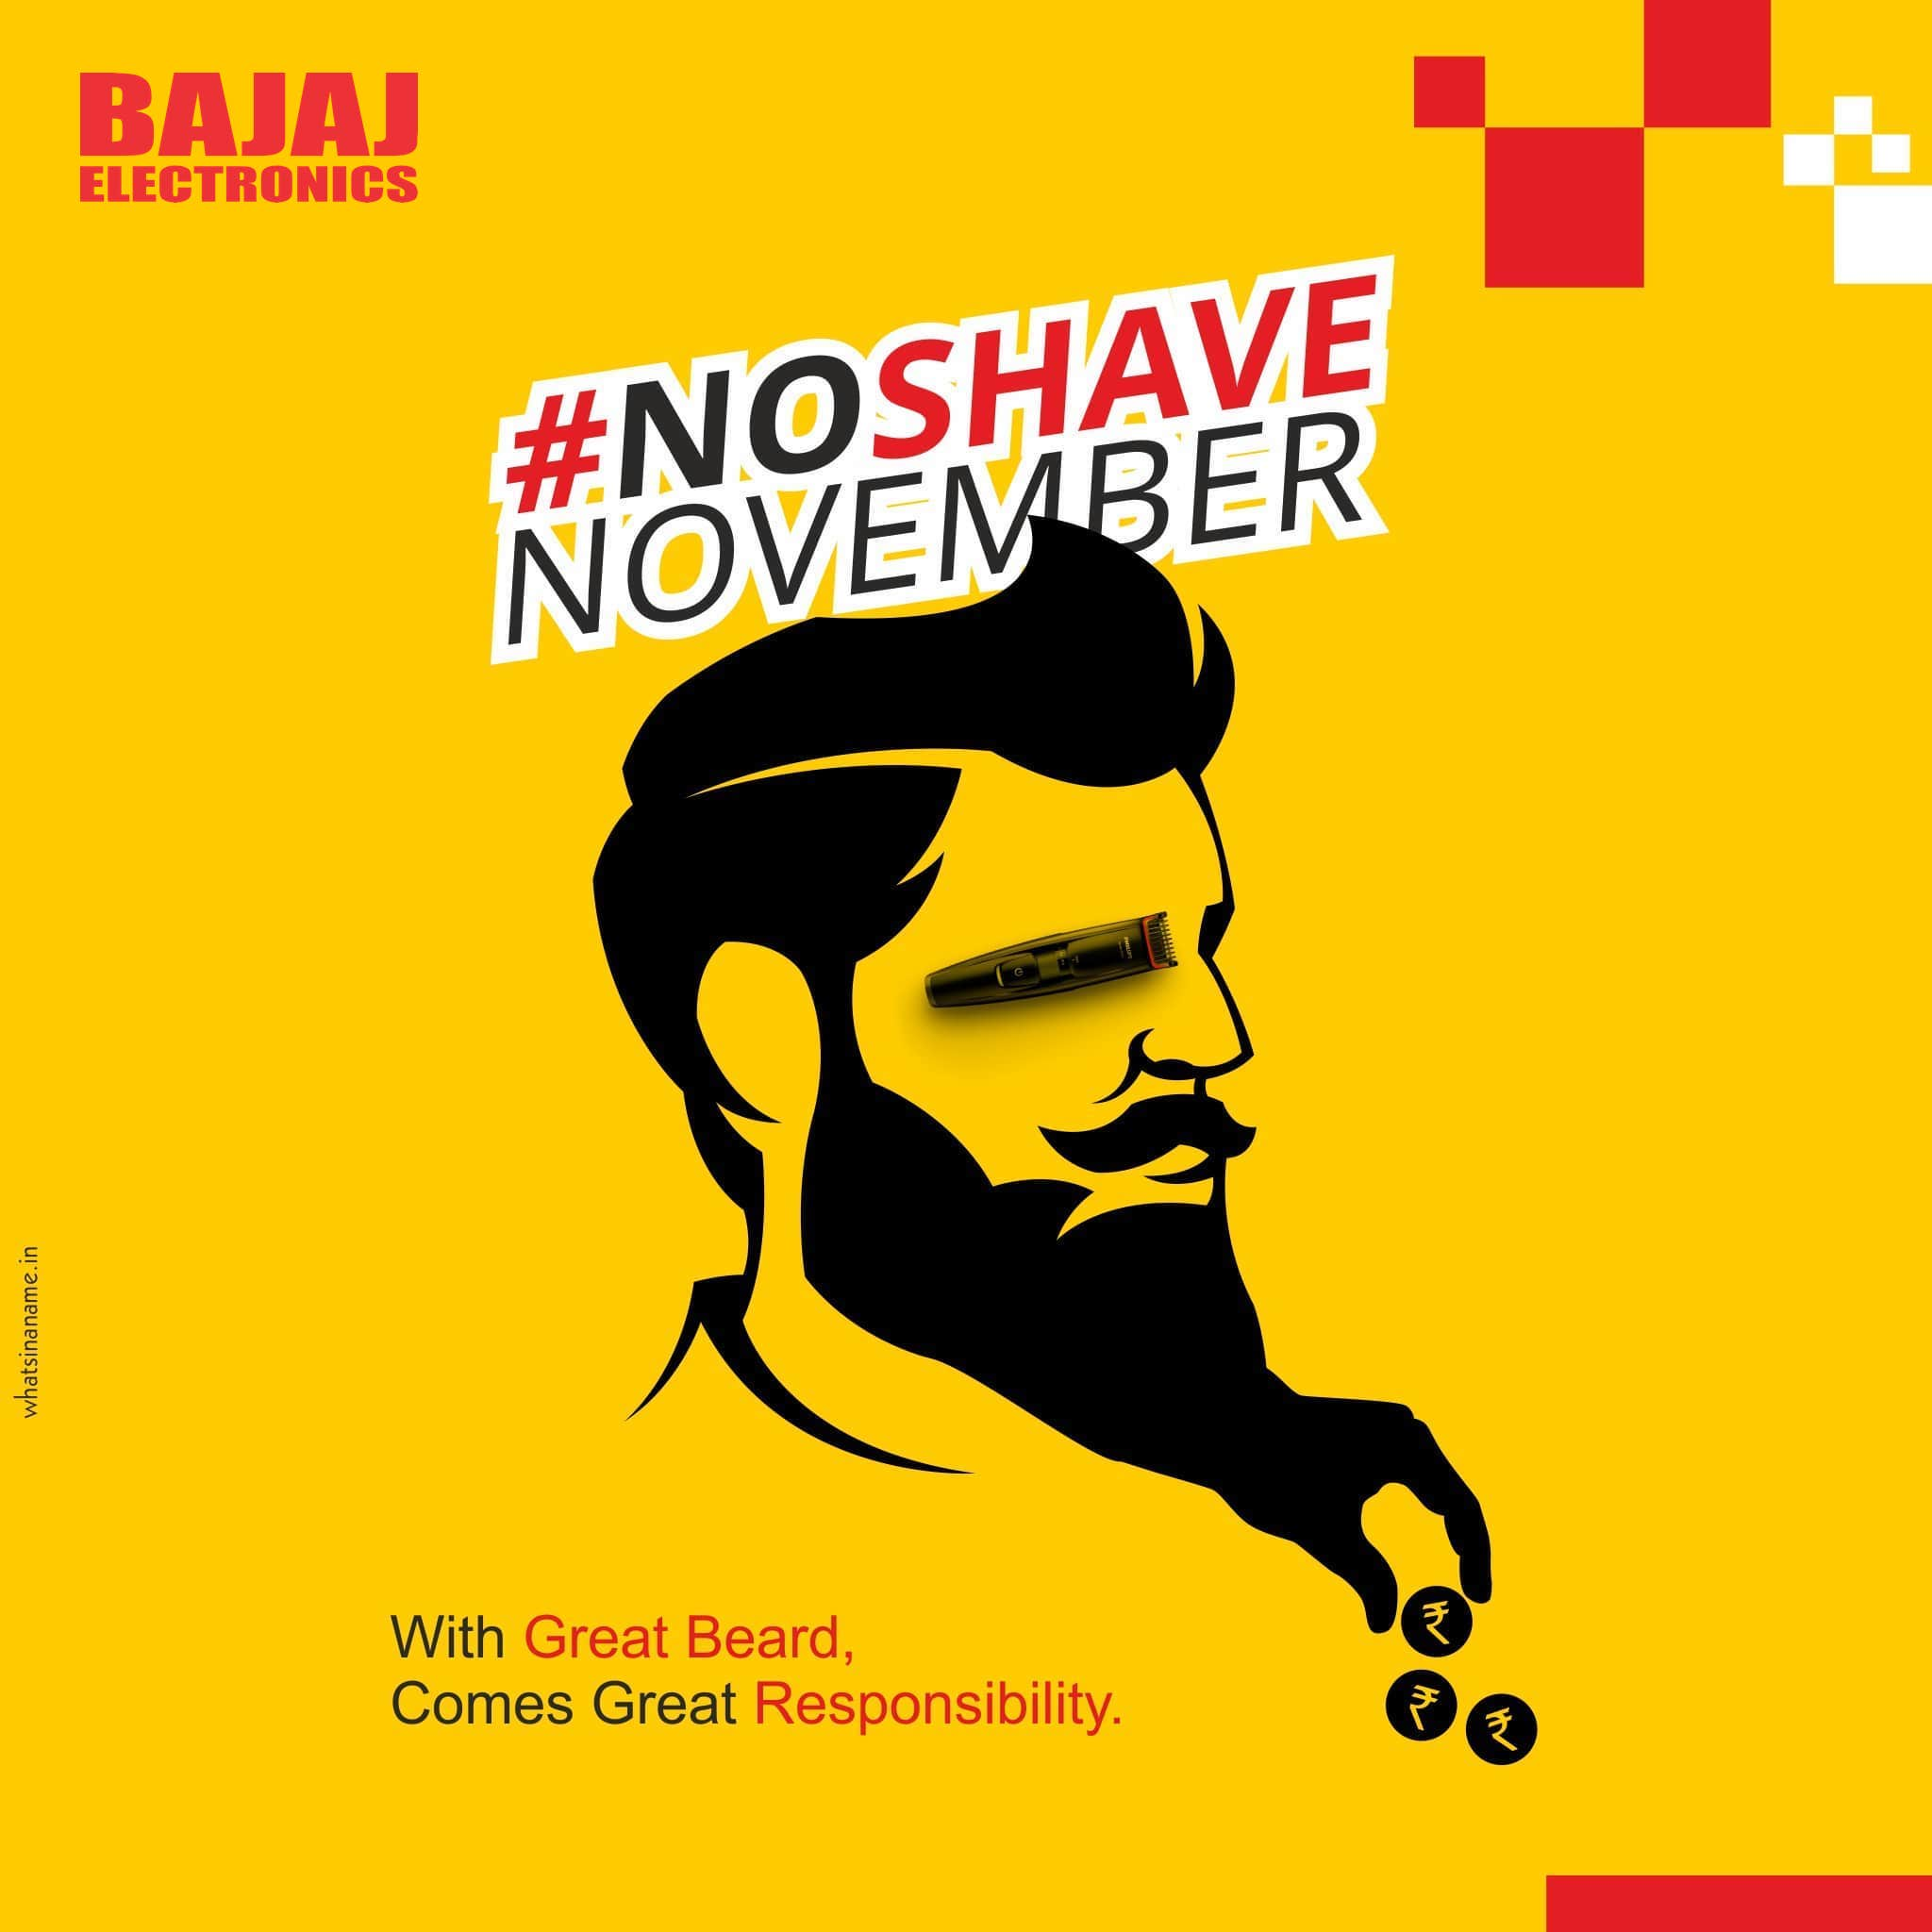 gplrpnsocyl-no-shave-november,-best-ad,-what's-in-a-name-creatives,-bajaj-electronics,-2